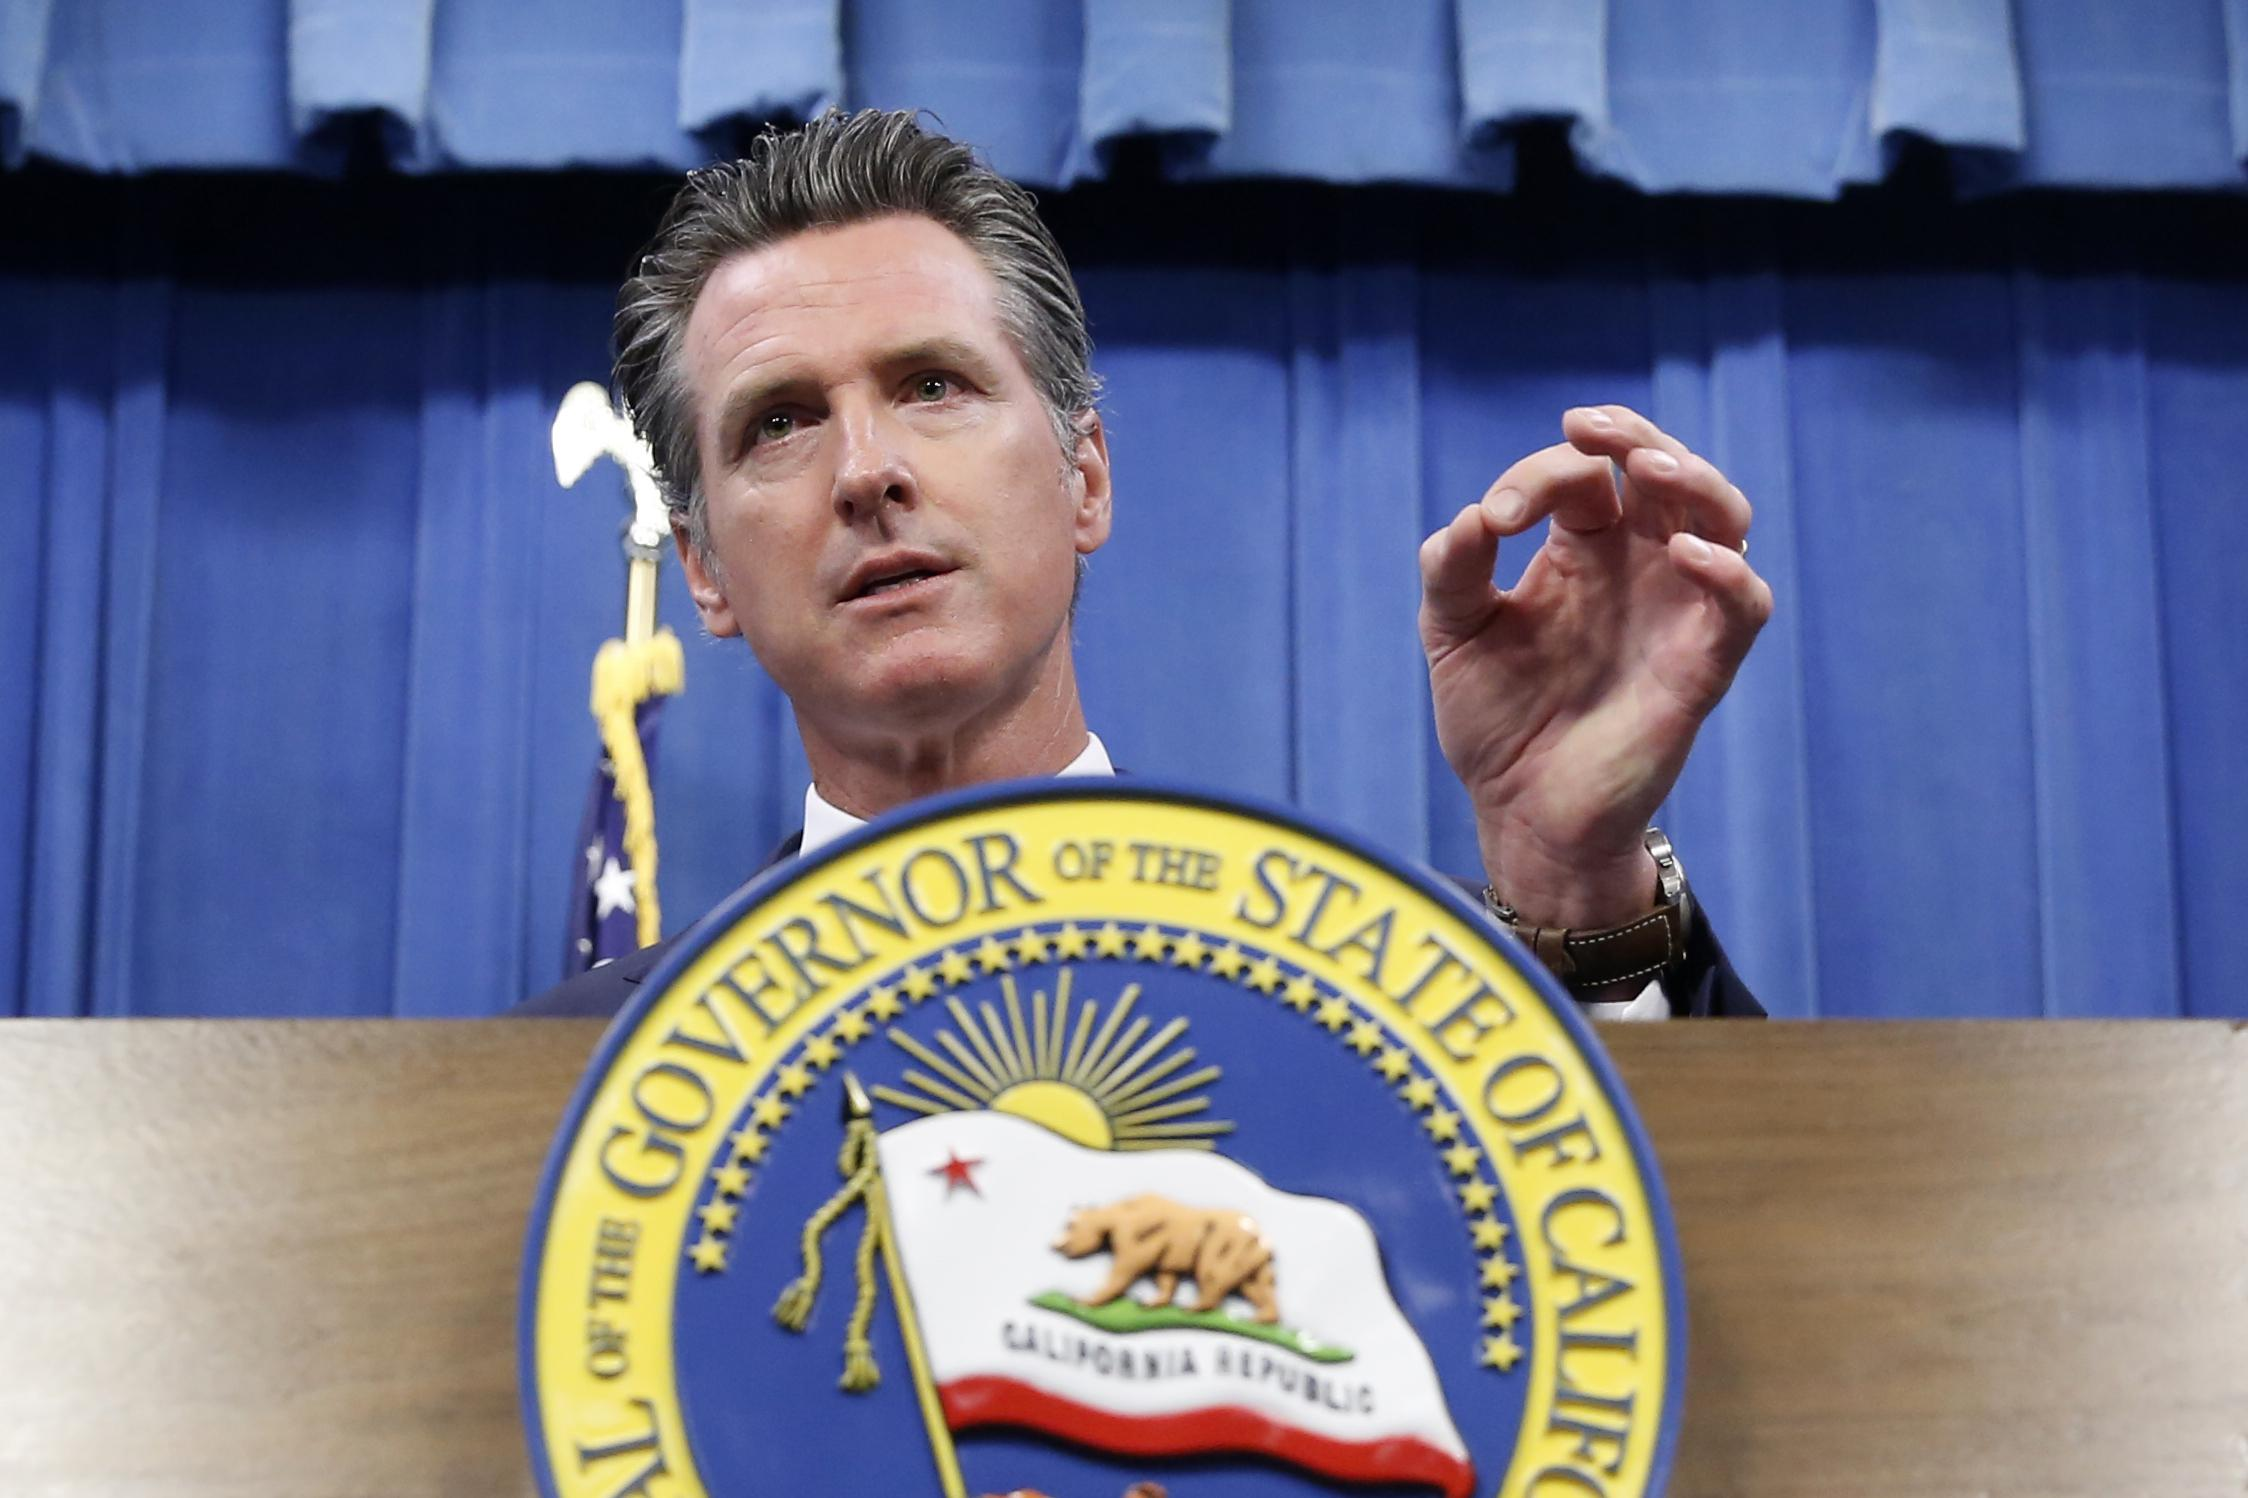 New California Law Requires Presidential Candidates To